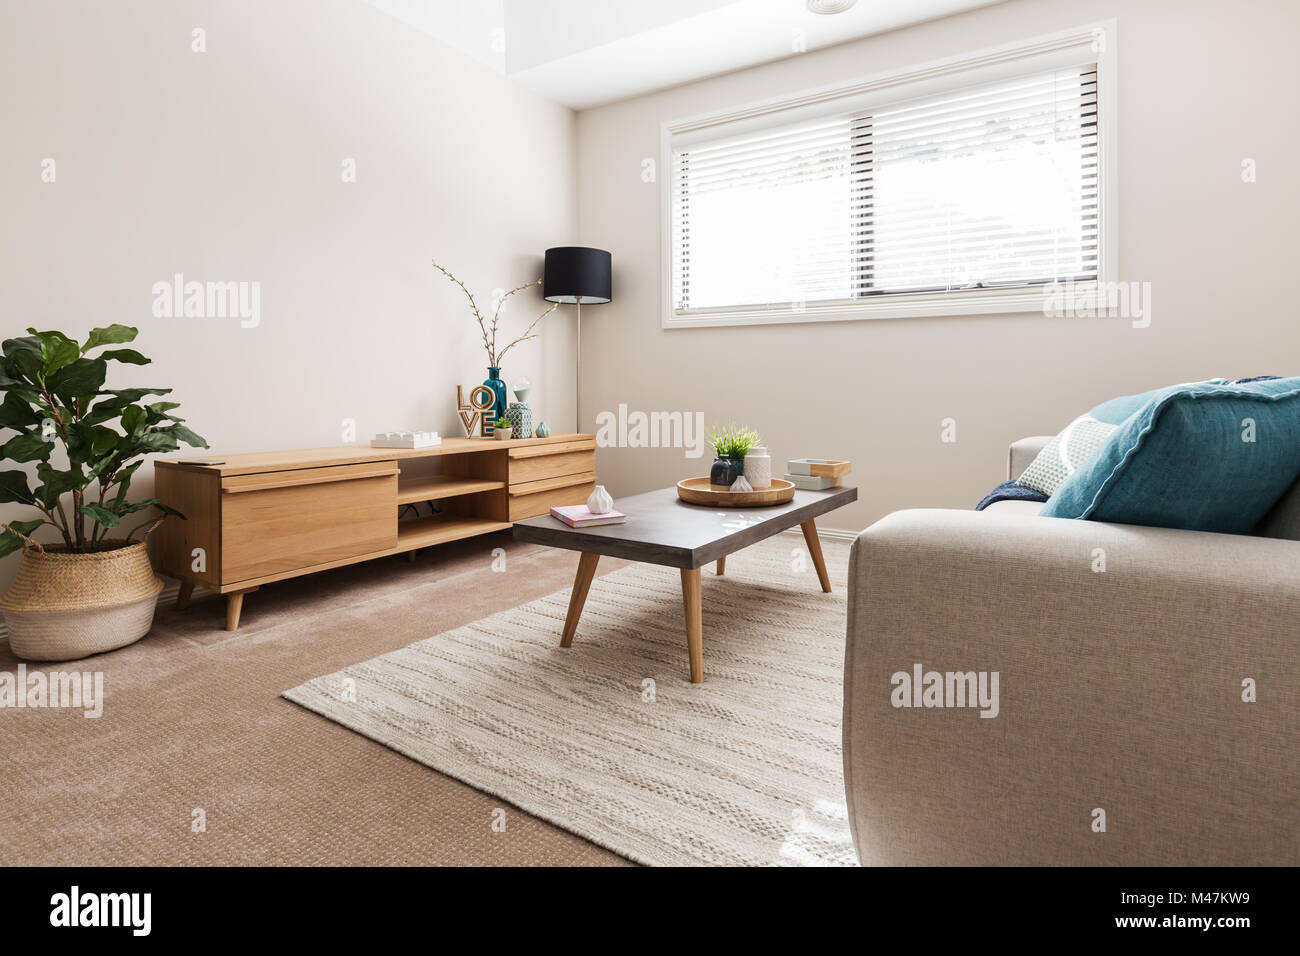 Scandi styled living room with low buffet and indoor plant - Stock Image